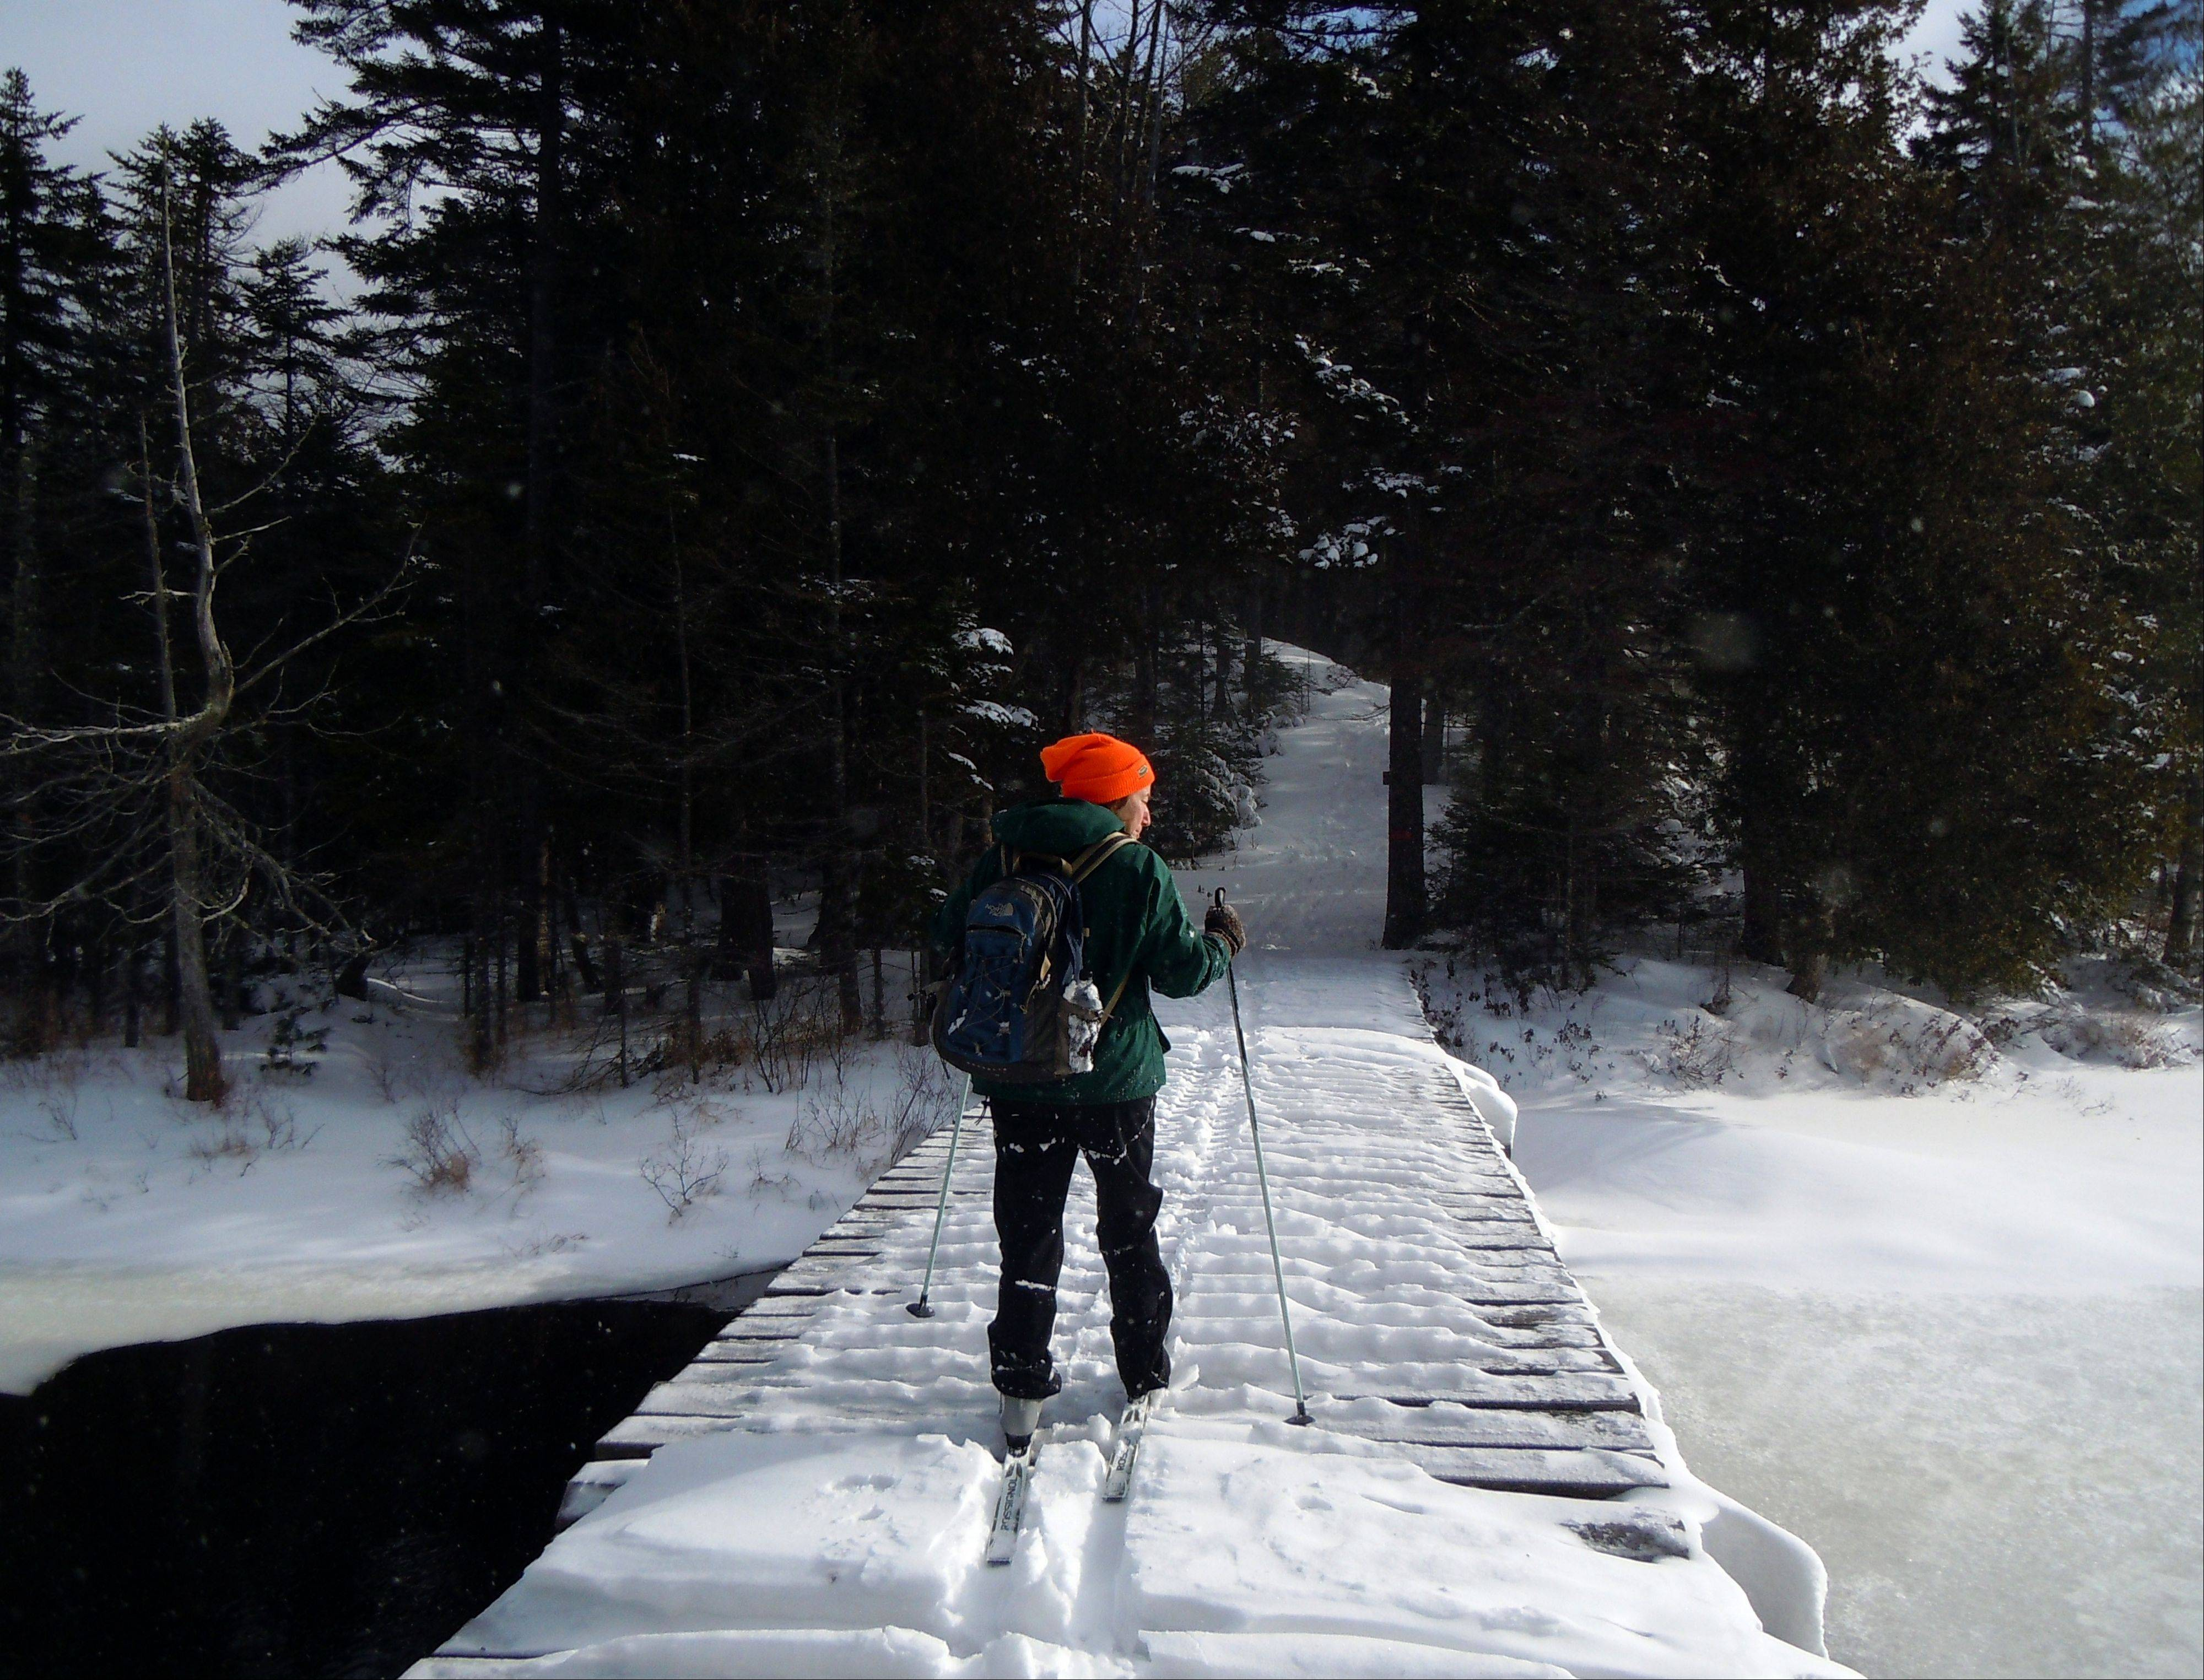 Lynn Dombek cross-country skis over a bridge on the lodge to lodge trail between camps at the Appalachian Mountain Club's backcountry wilderness lodge near Greenville, Maine.